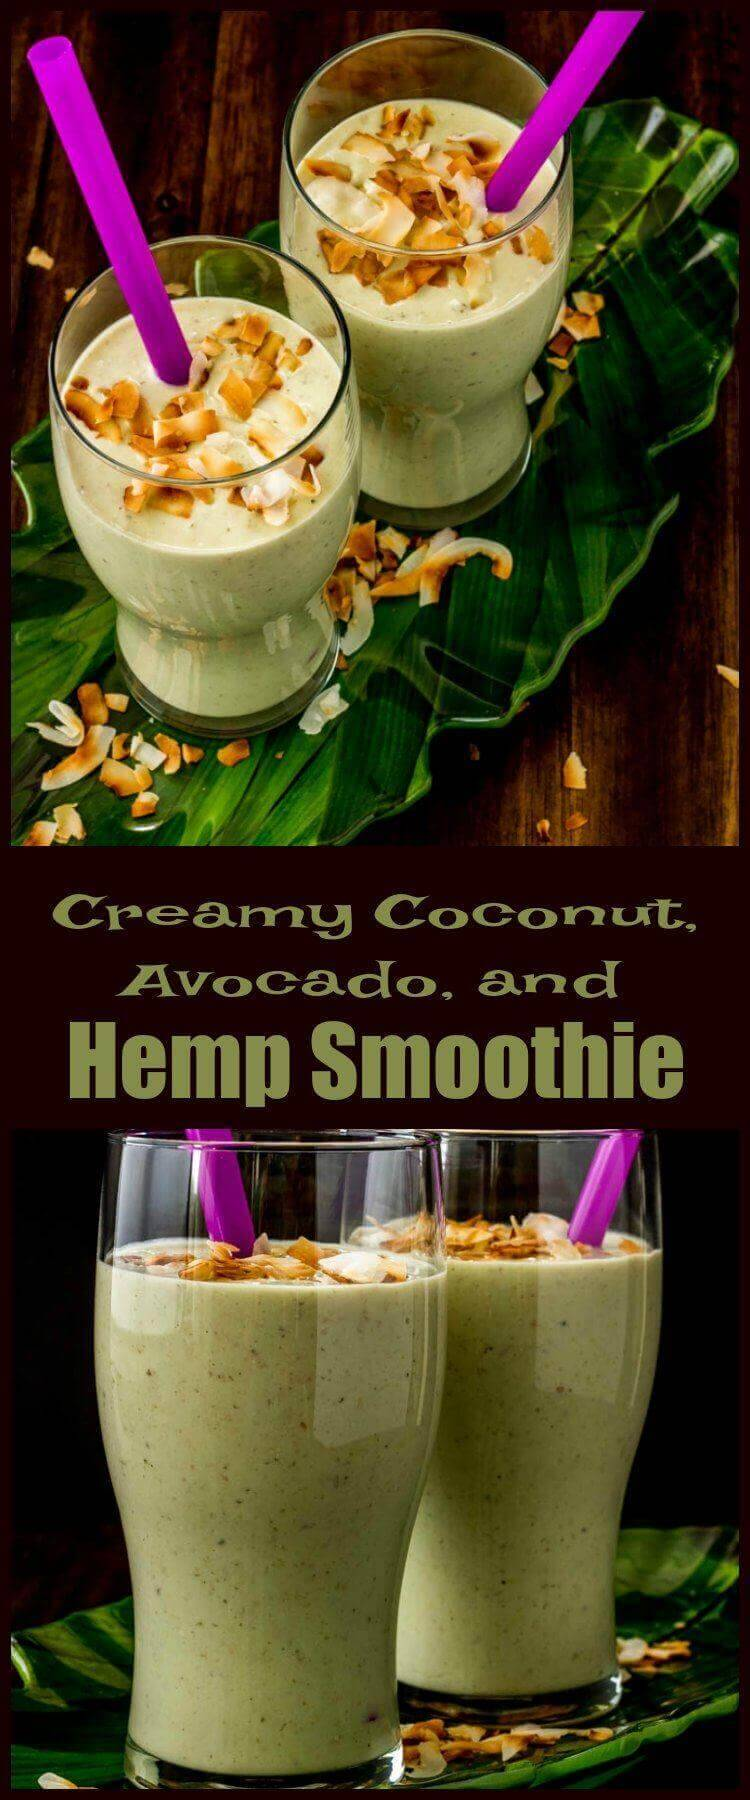 Creamy Coconut, Avocado, and Hemp Smoothie